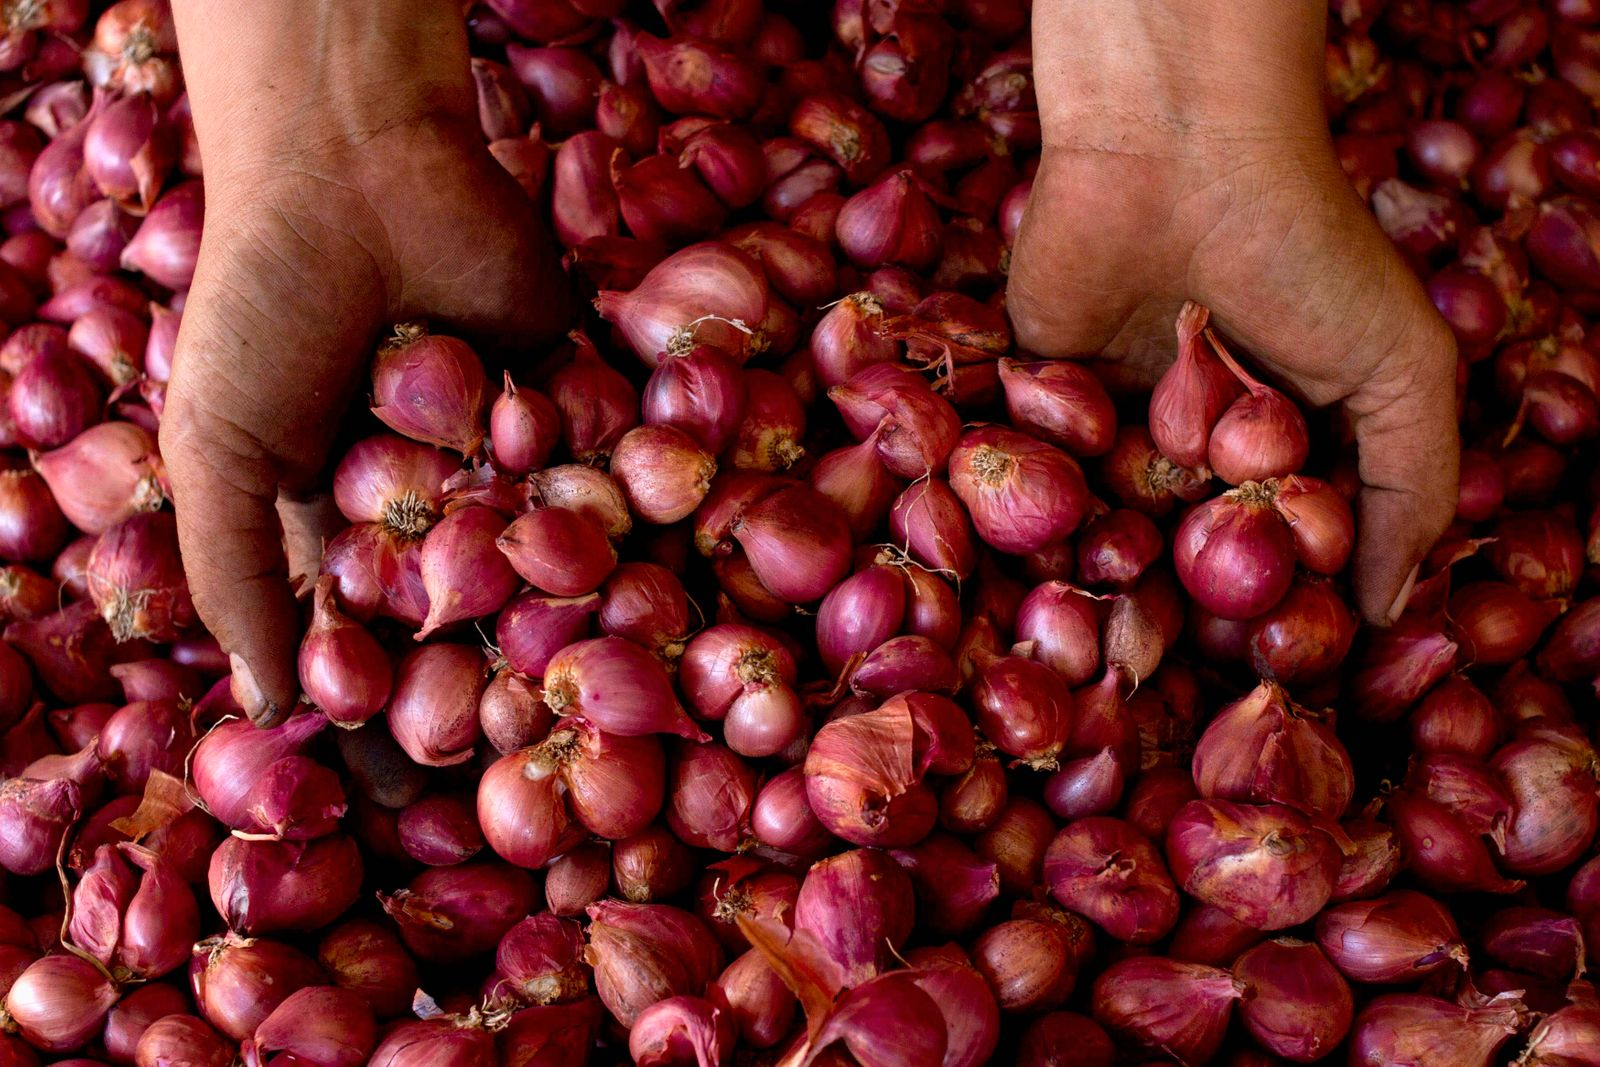 An onion seller dips her hands in a basket of onions as she poses for a photograph at Beringhardjo market in Yogyakarta